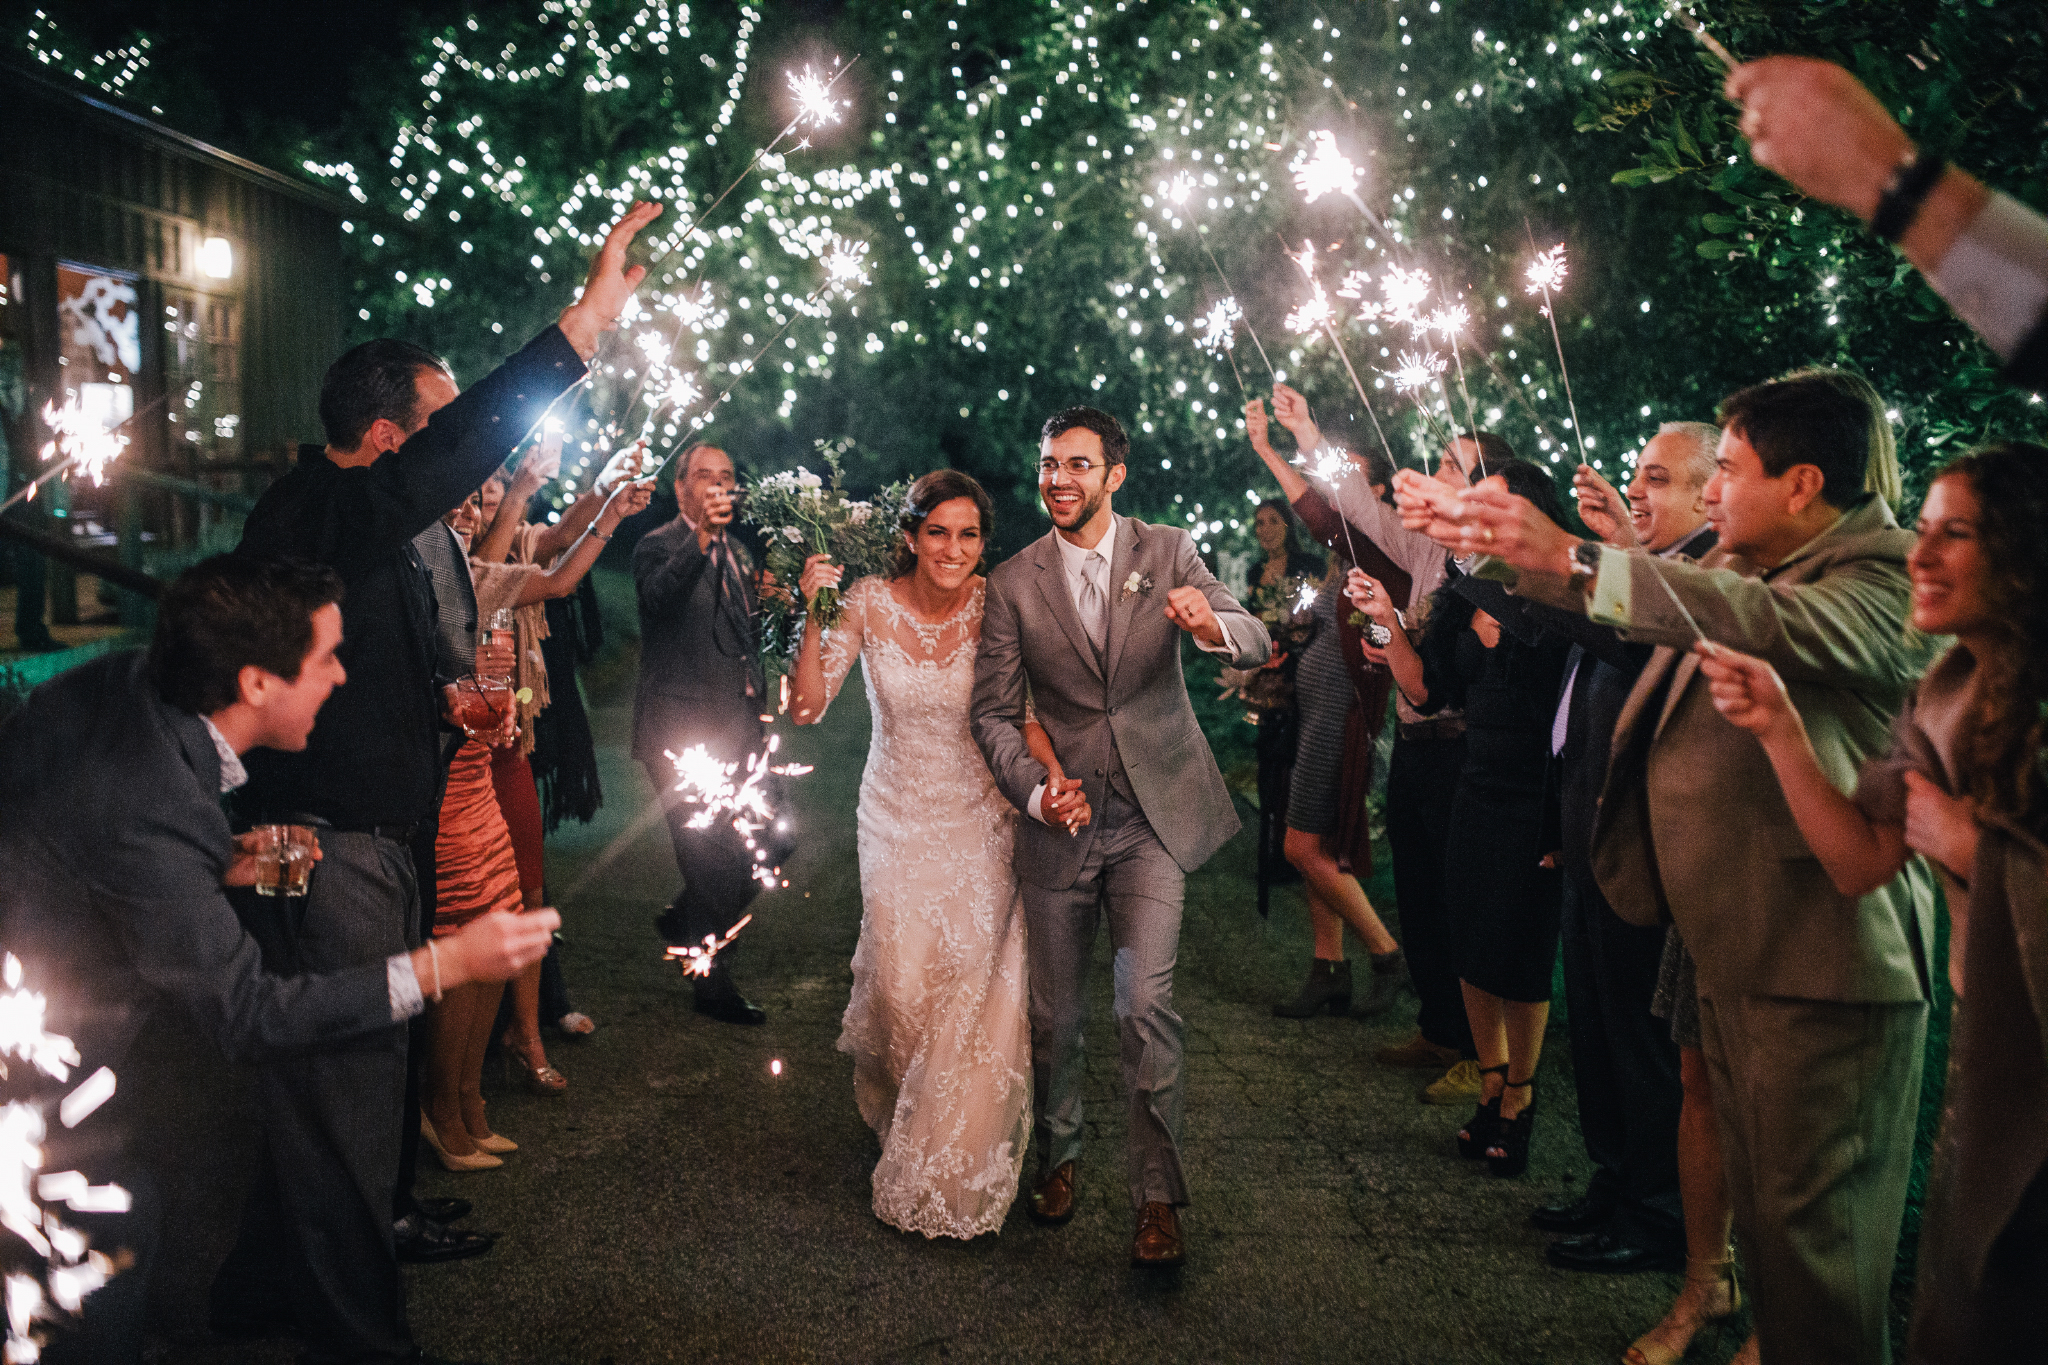 san diego wedding   photographer | married couple walking under sparklers held by crowd